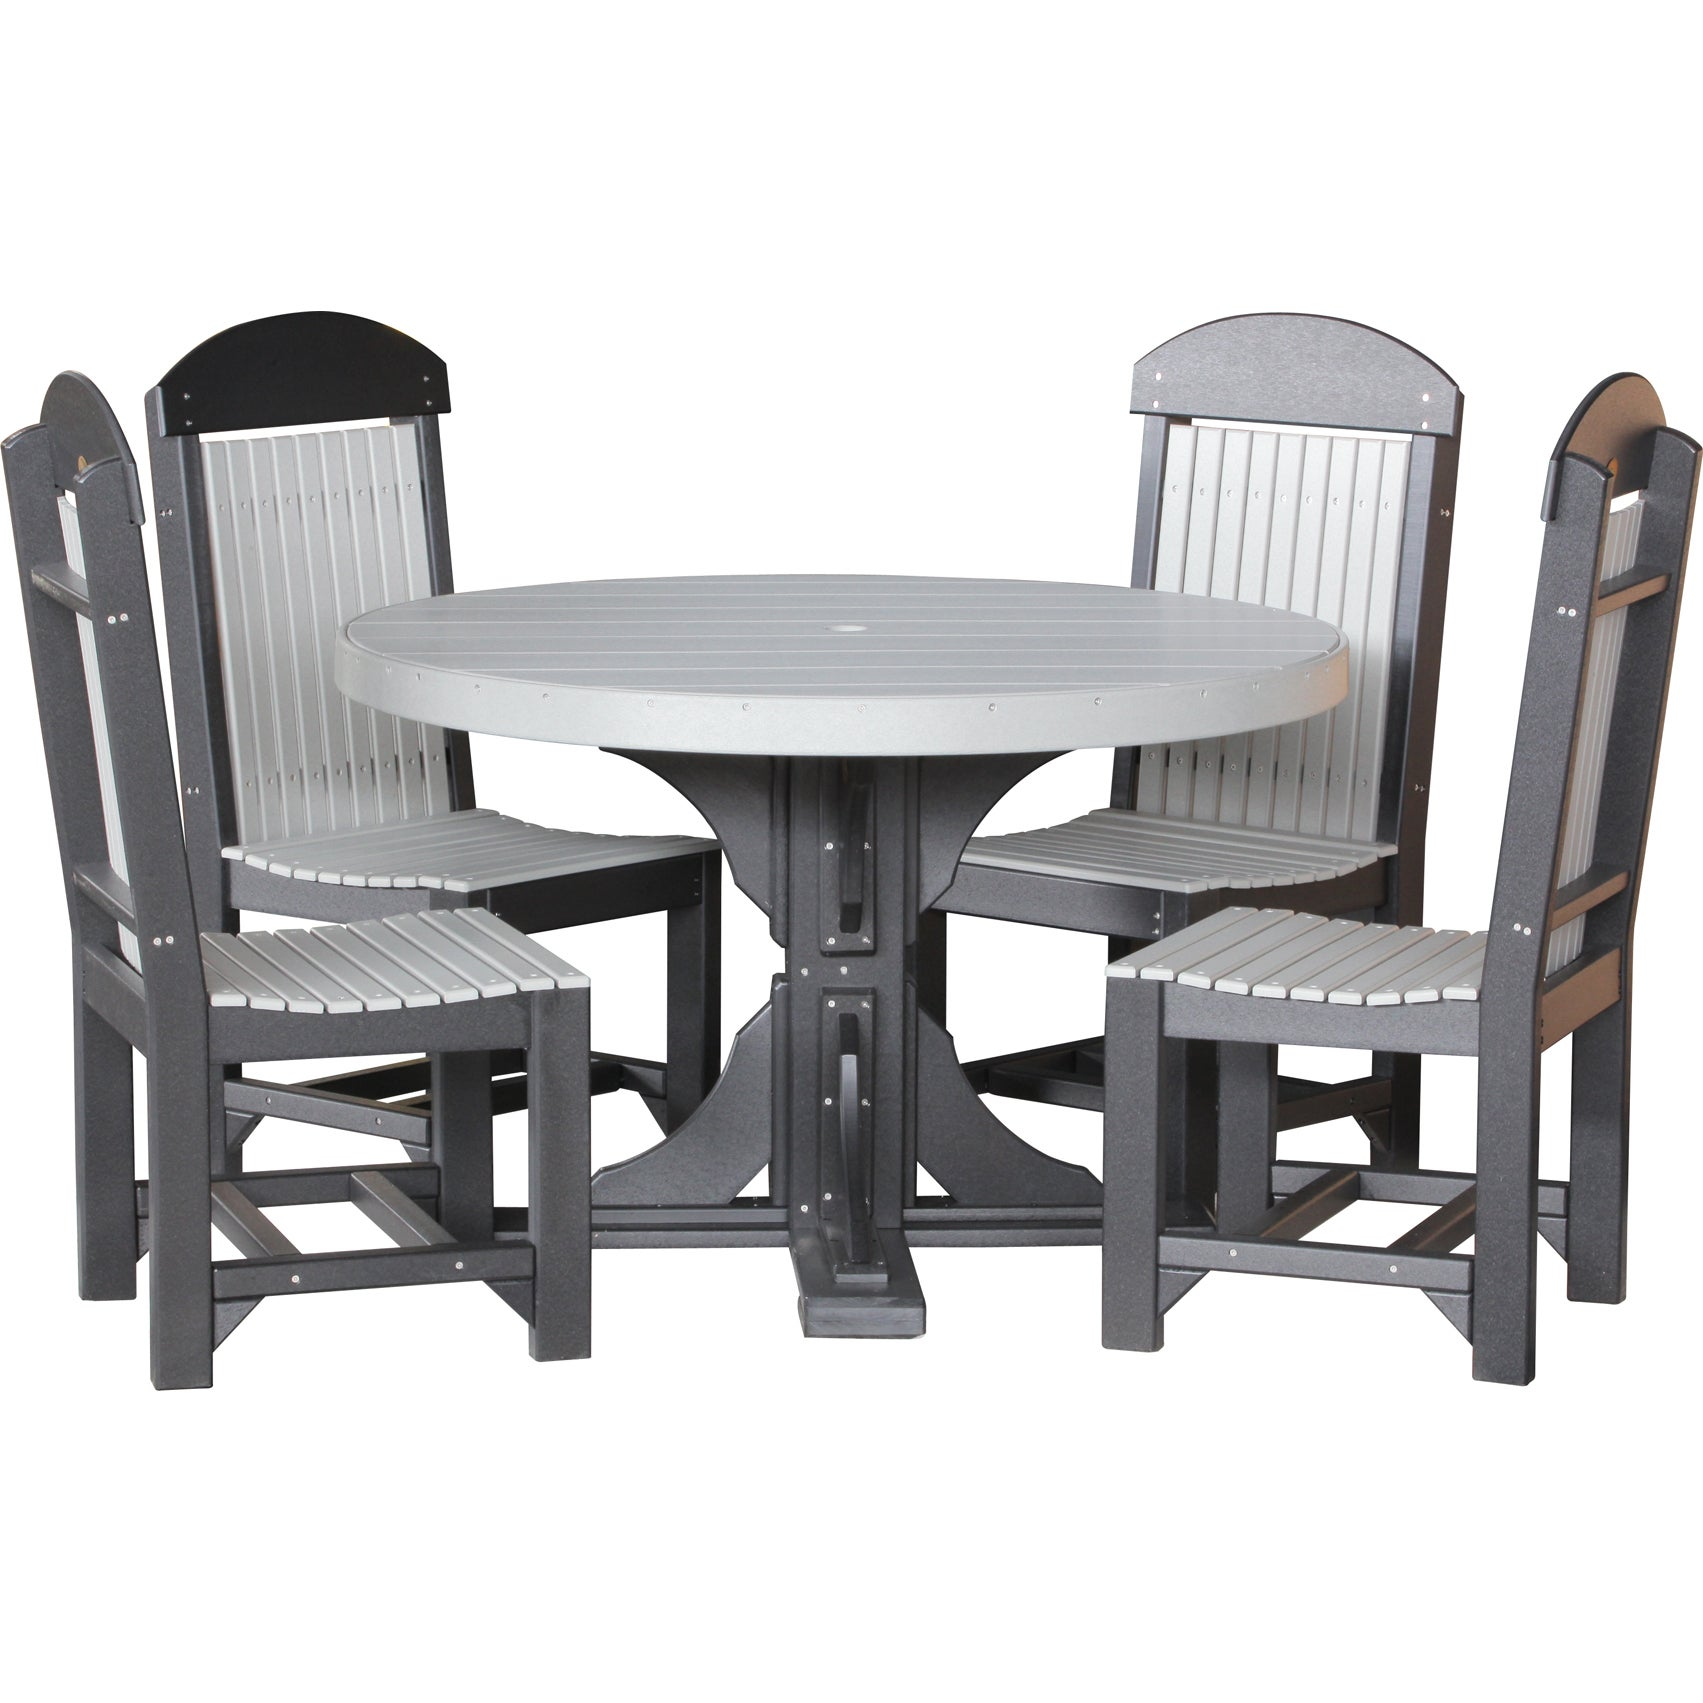 Poly Outdoor 4 Foot Round Table And 4